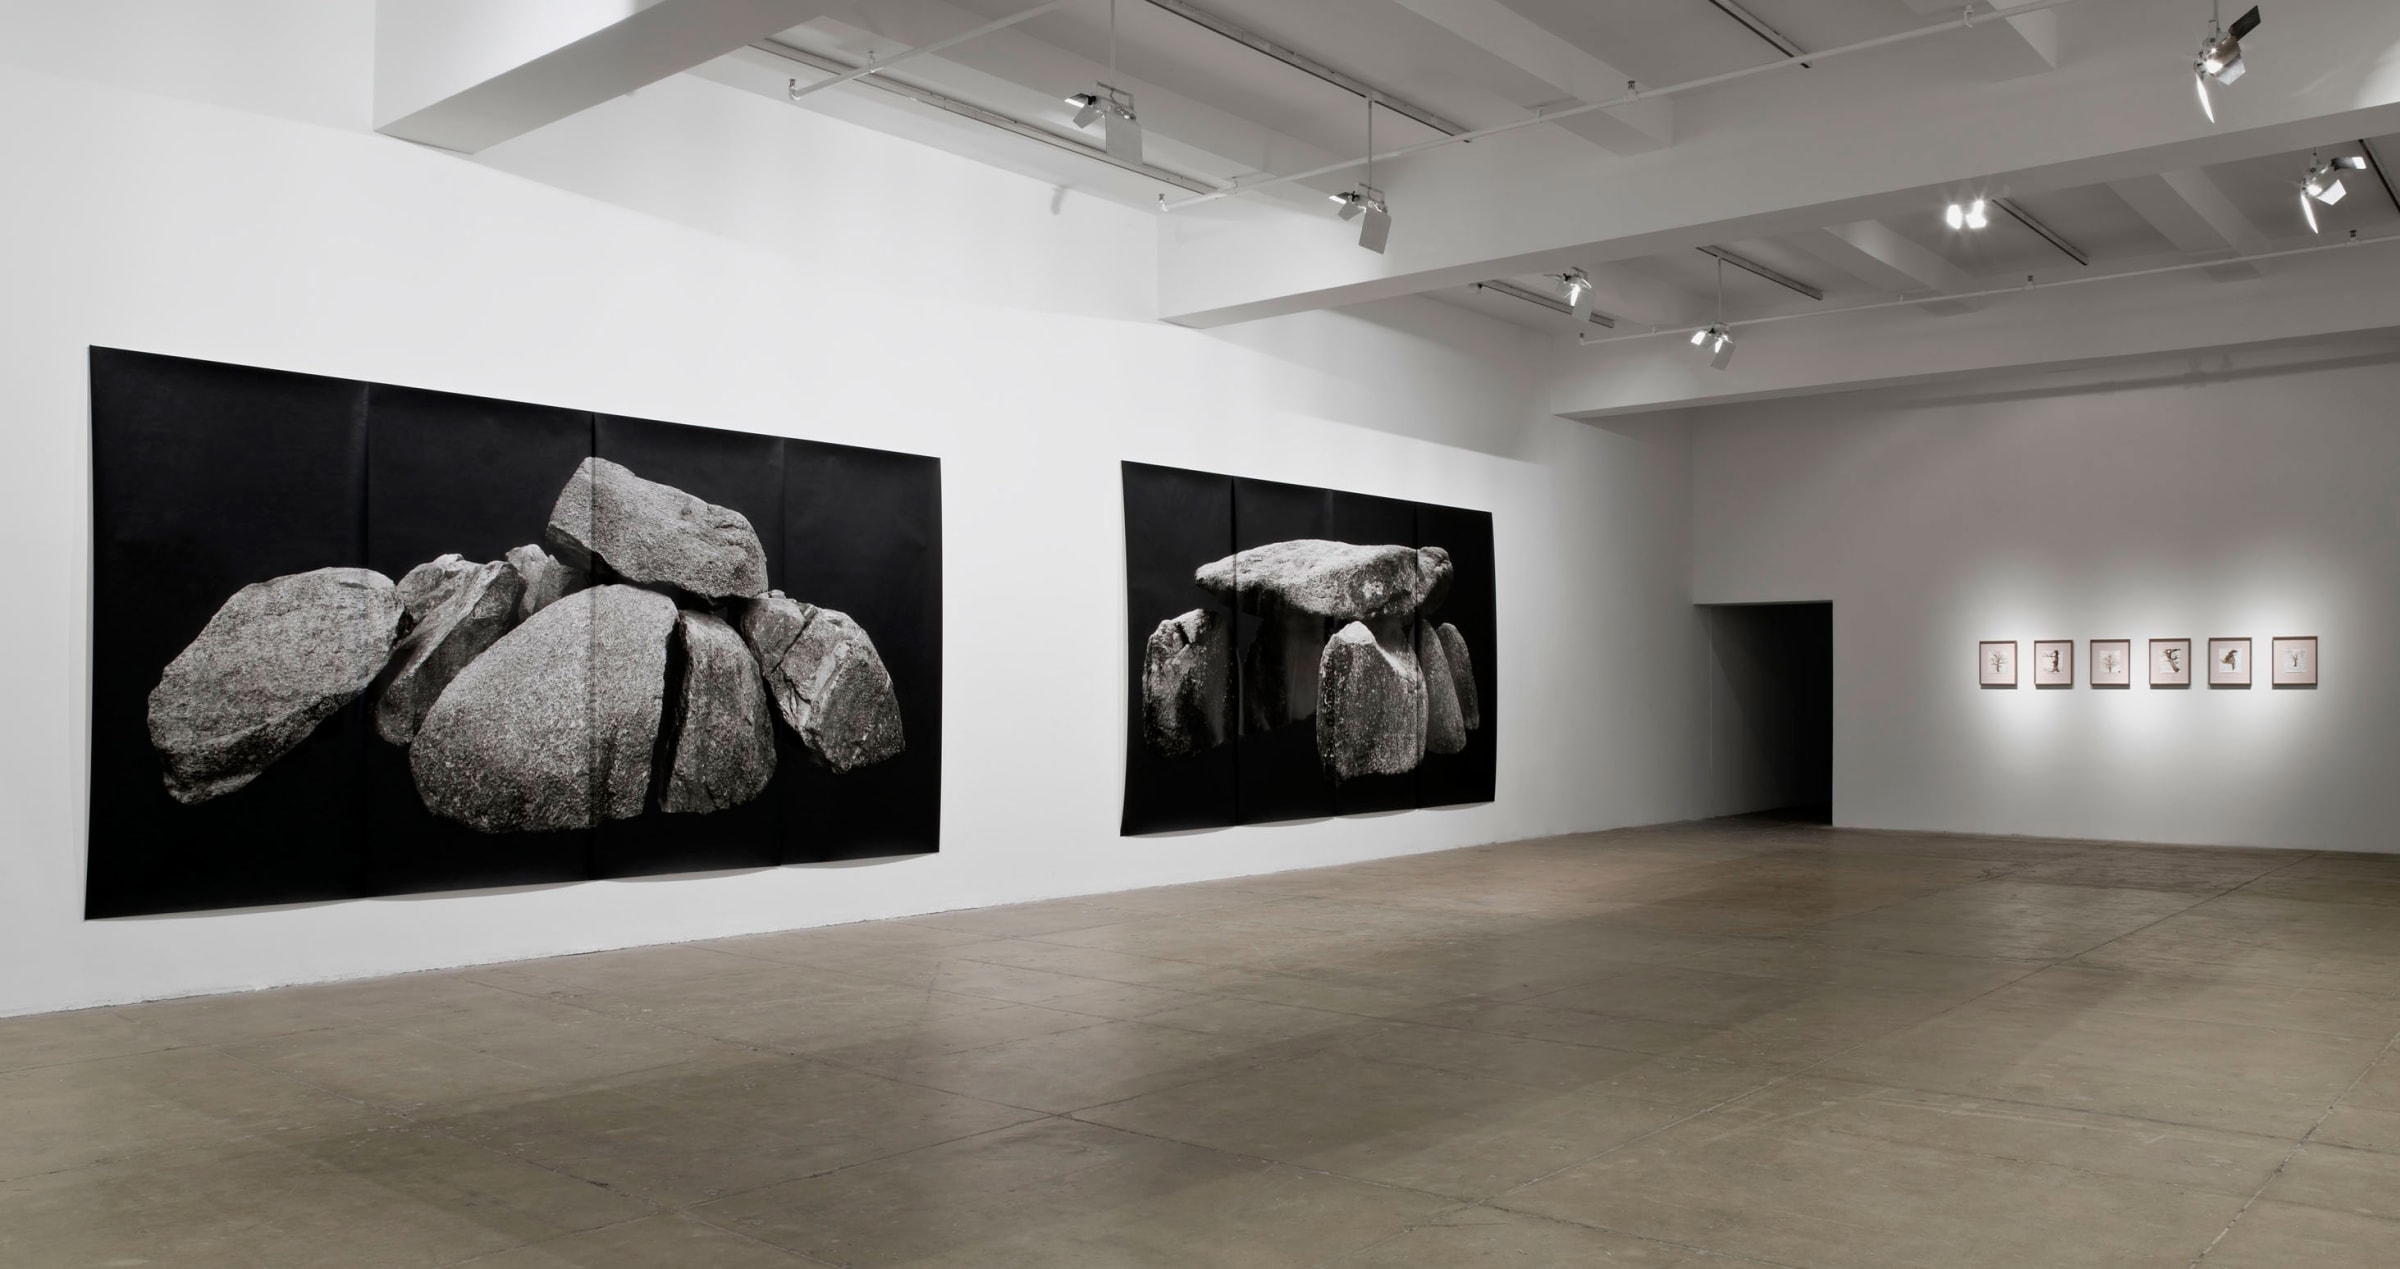 Two large prints of stacked rocks on a black background are pinned to the left wall. Six framed drawings of bare trees hang on the right wall.